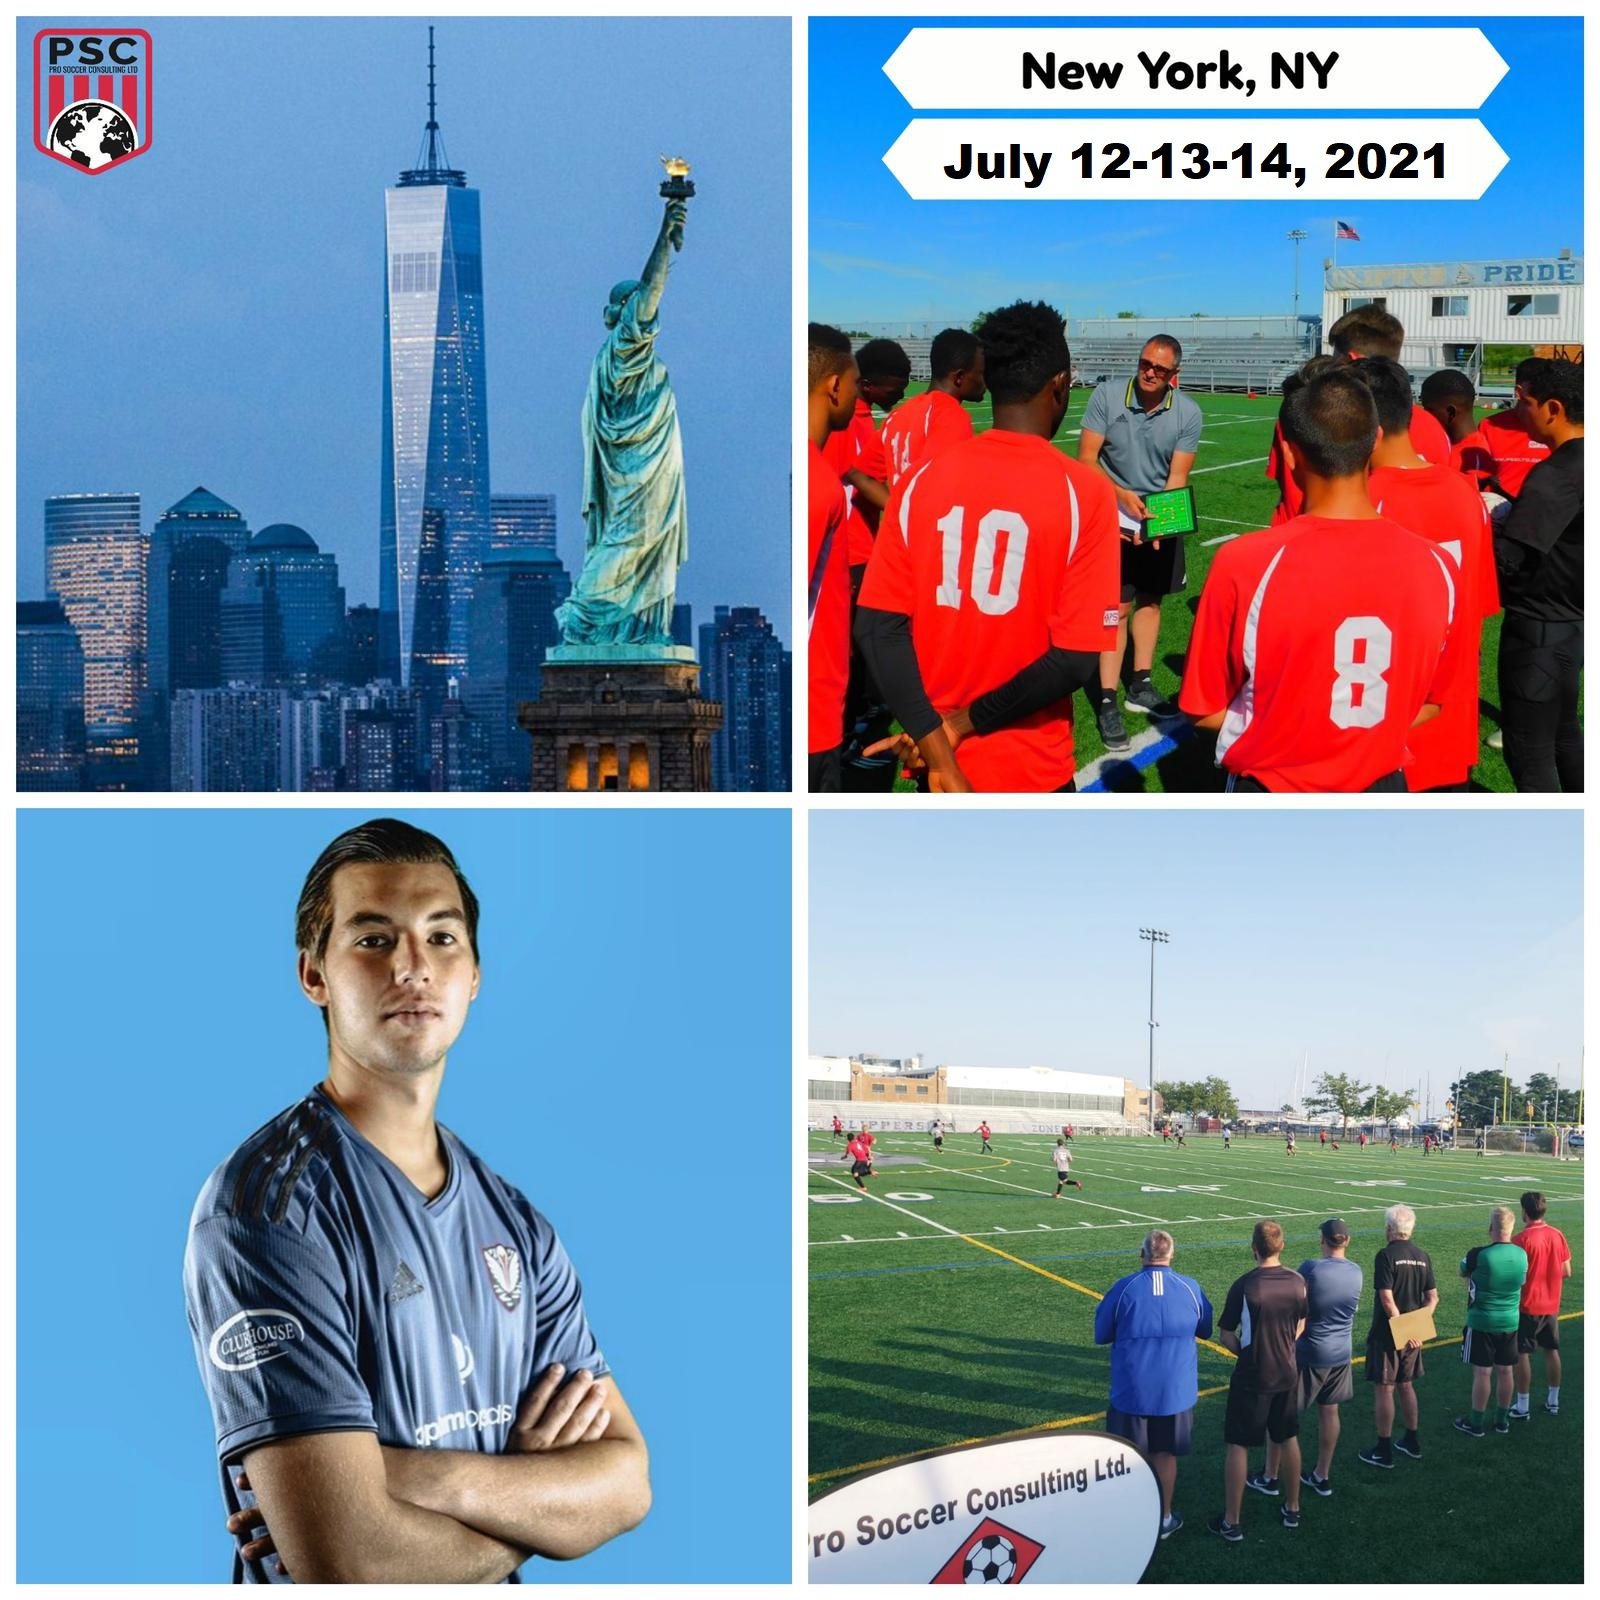 Pro Soccer tryout New York July